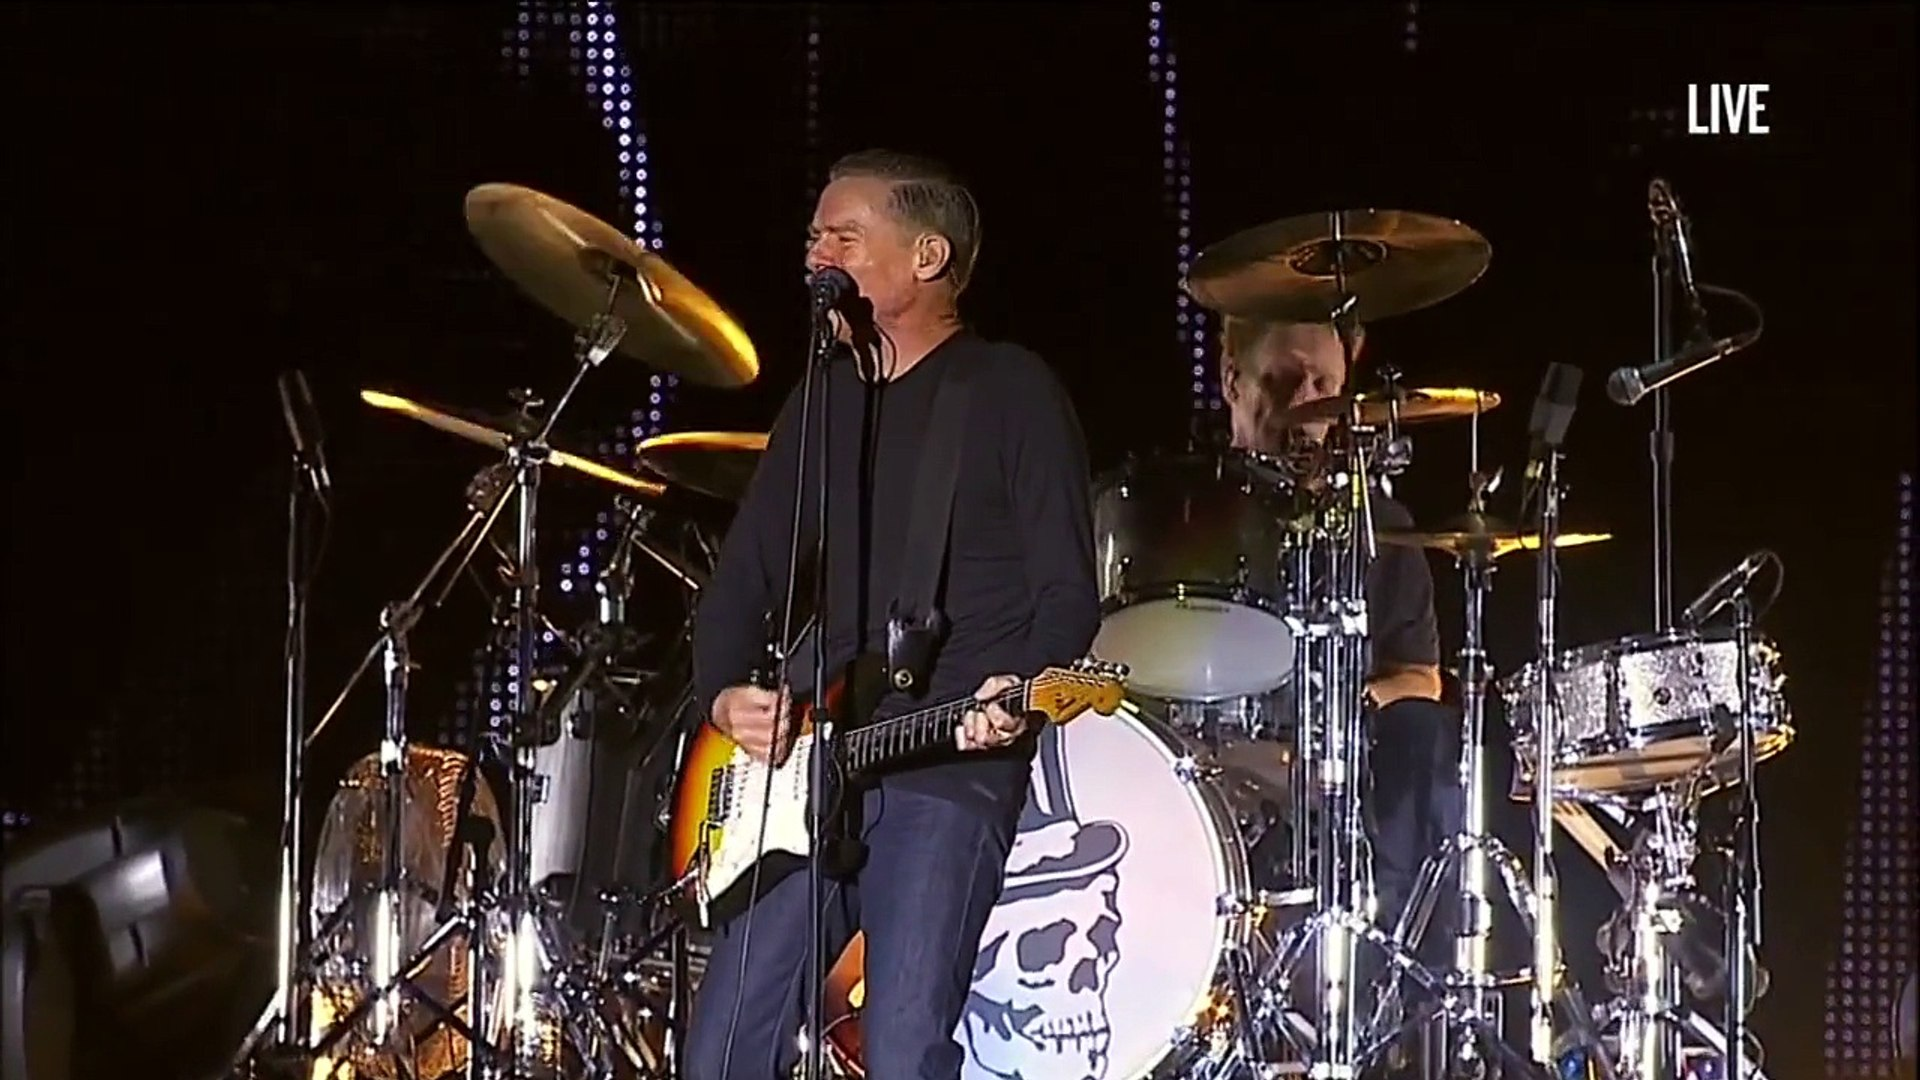 Bryan Adams - Cuts Like a Knife(Live)Rock in Rio Lisboa 2012